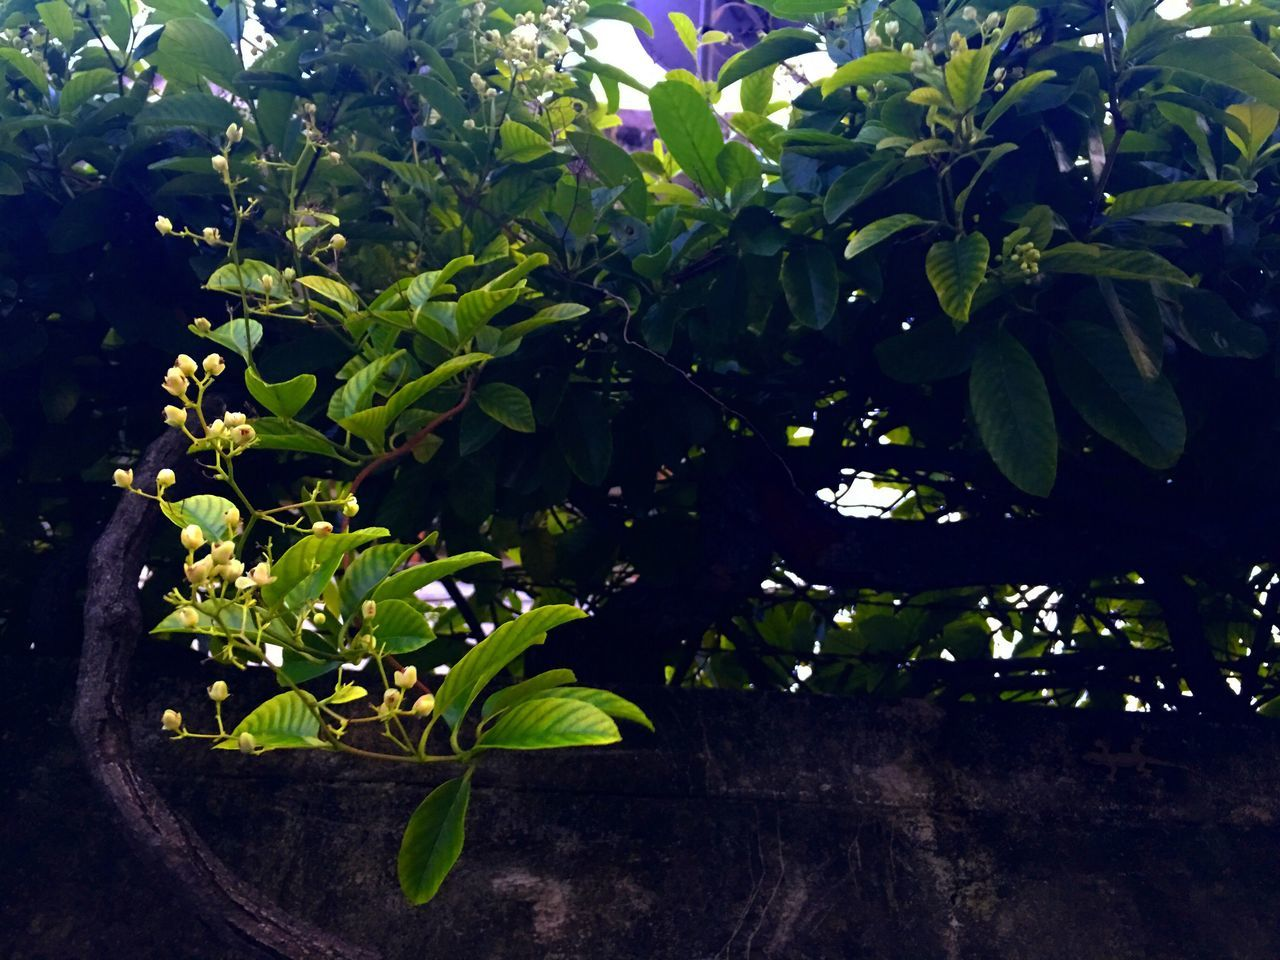 Growth Leaf Nature Plant Beauty In Nature Green Color No People Outdoors Close-up Day Freshness